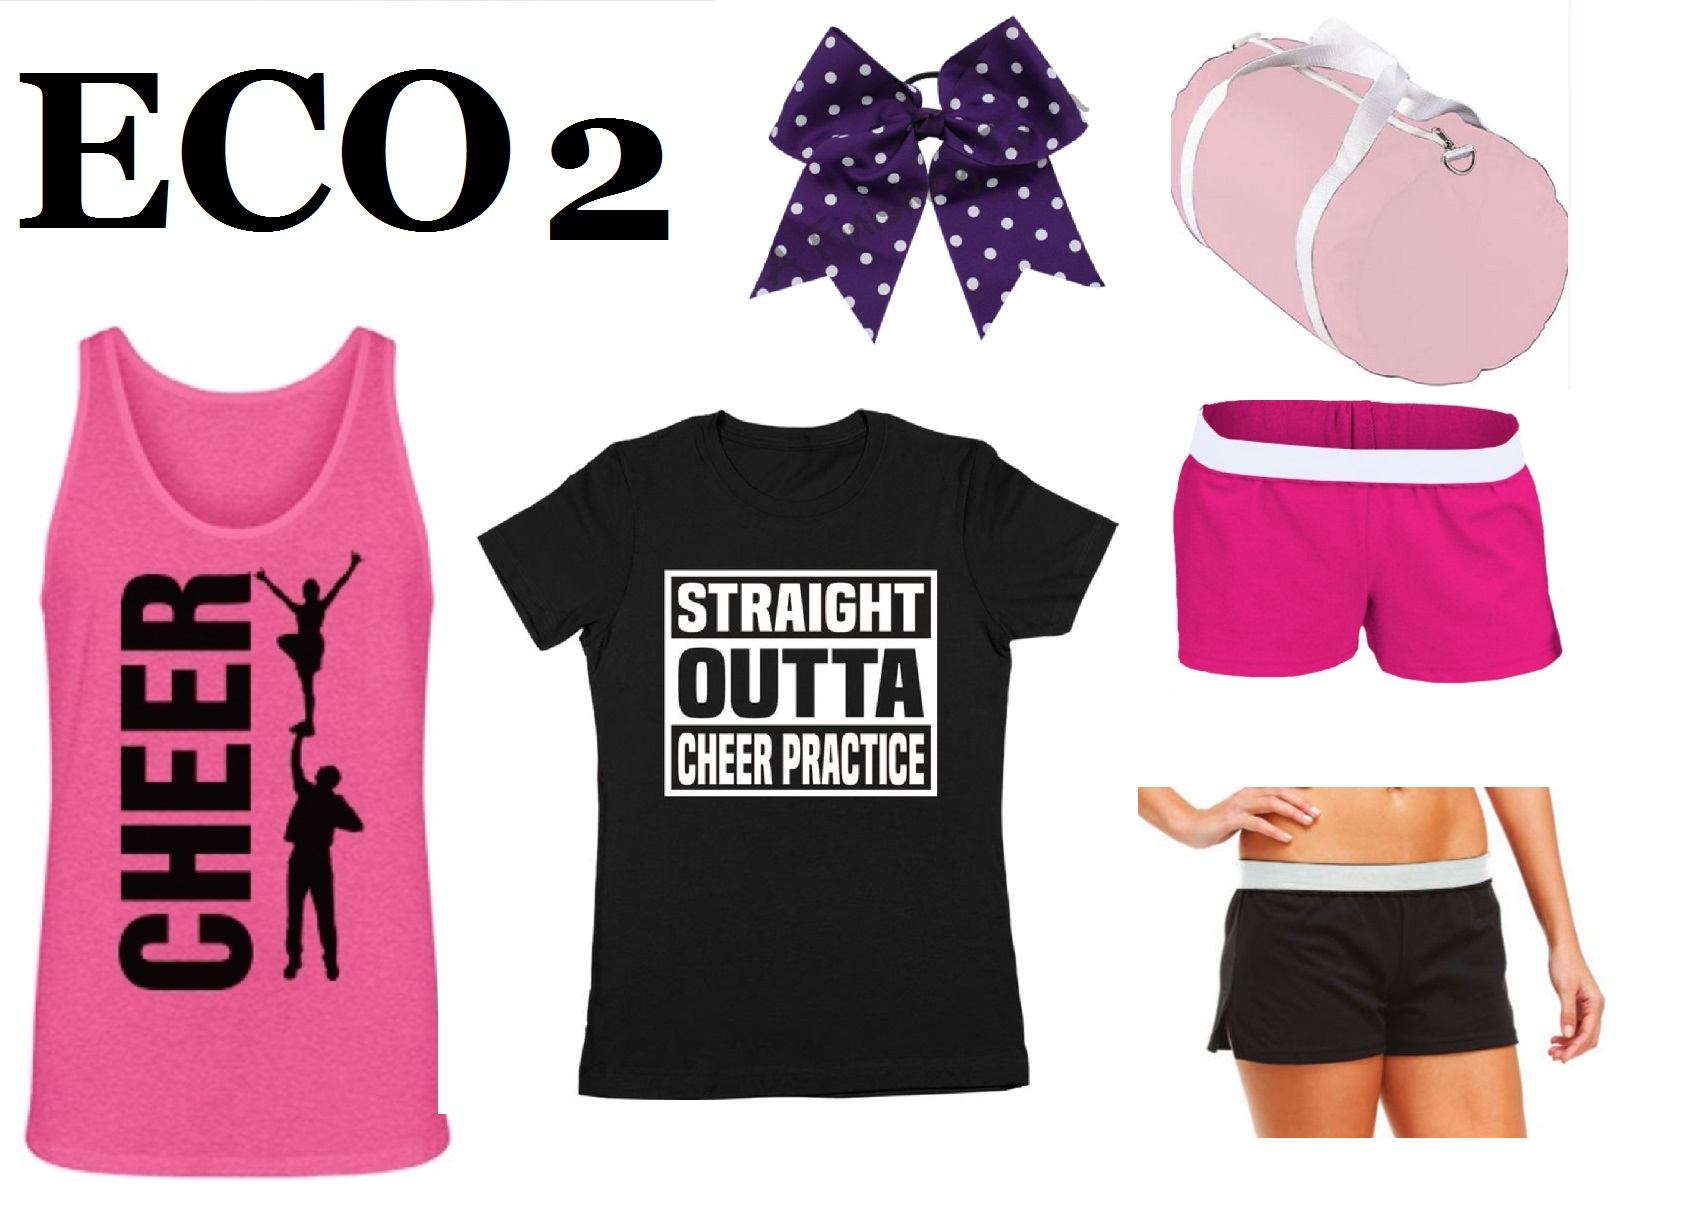 ECO 2 Cheer Camp & Practice Pack